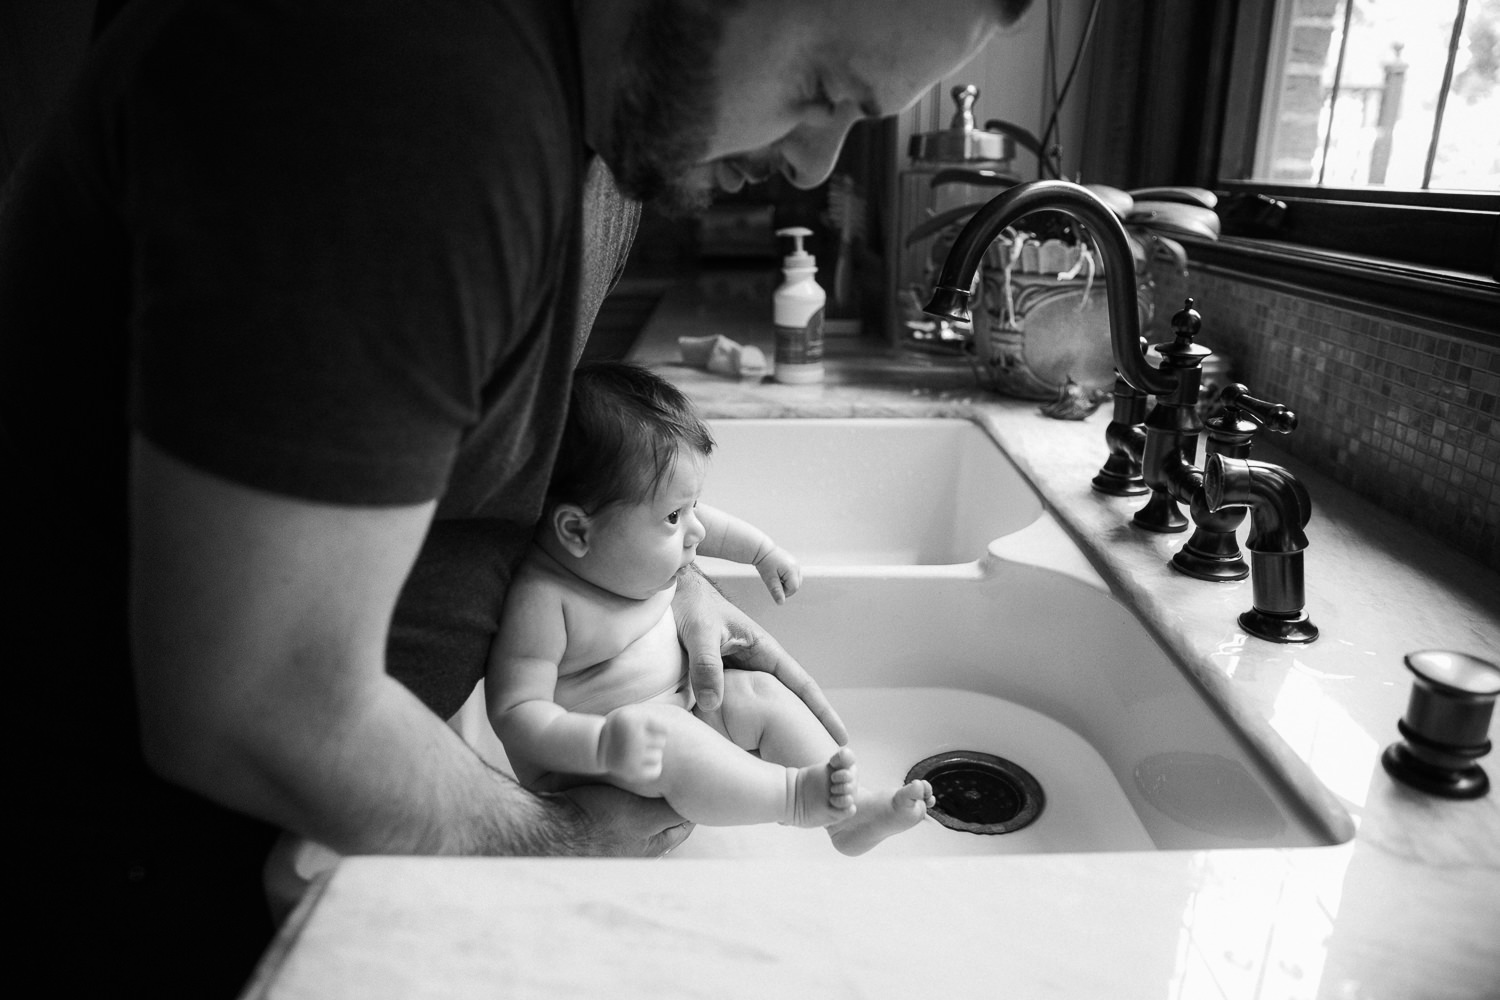 father putting 2 month old baby girl into the kitchen sink for bath time - GTA Lifestyle Photography